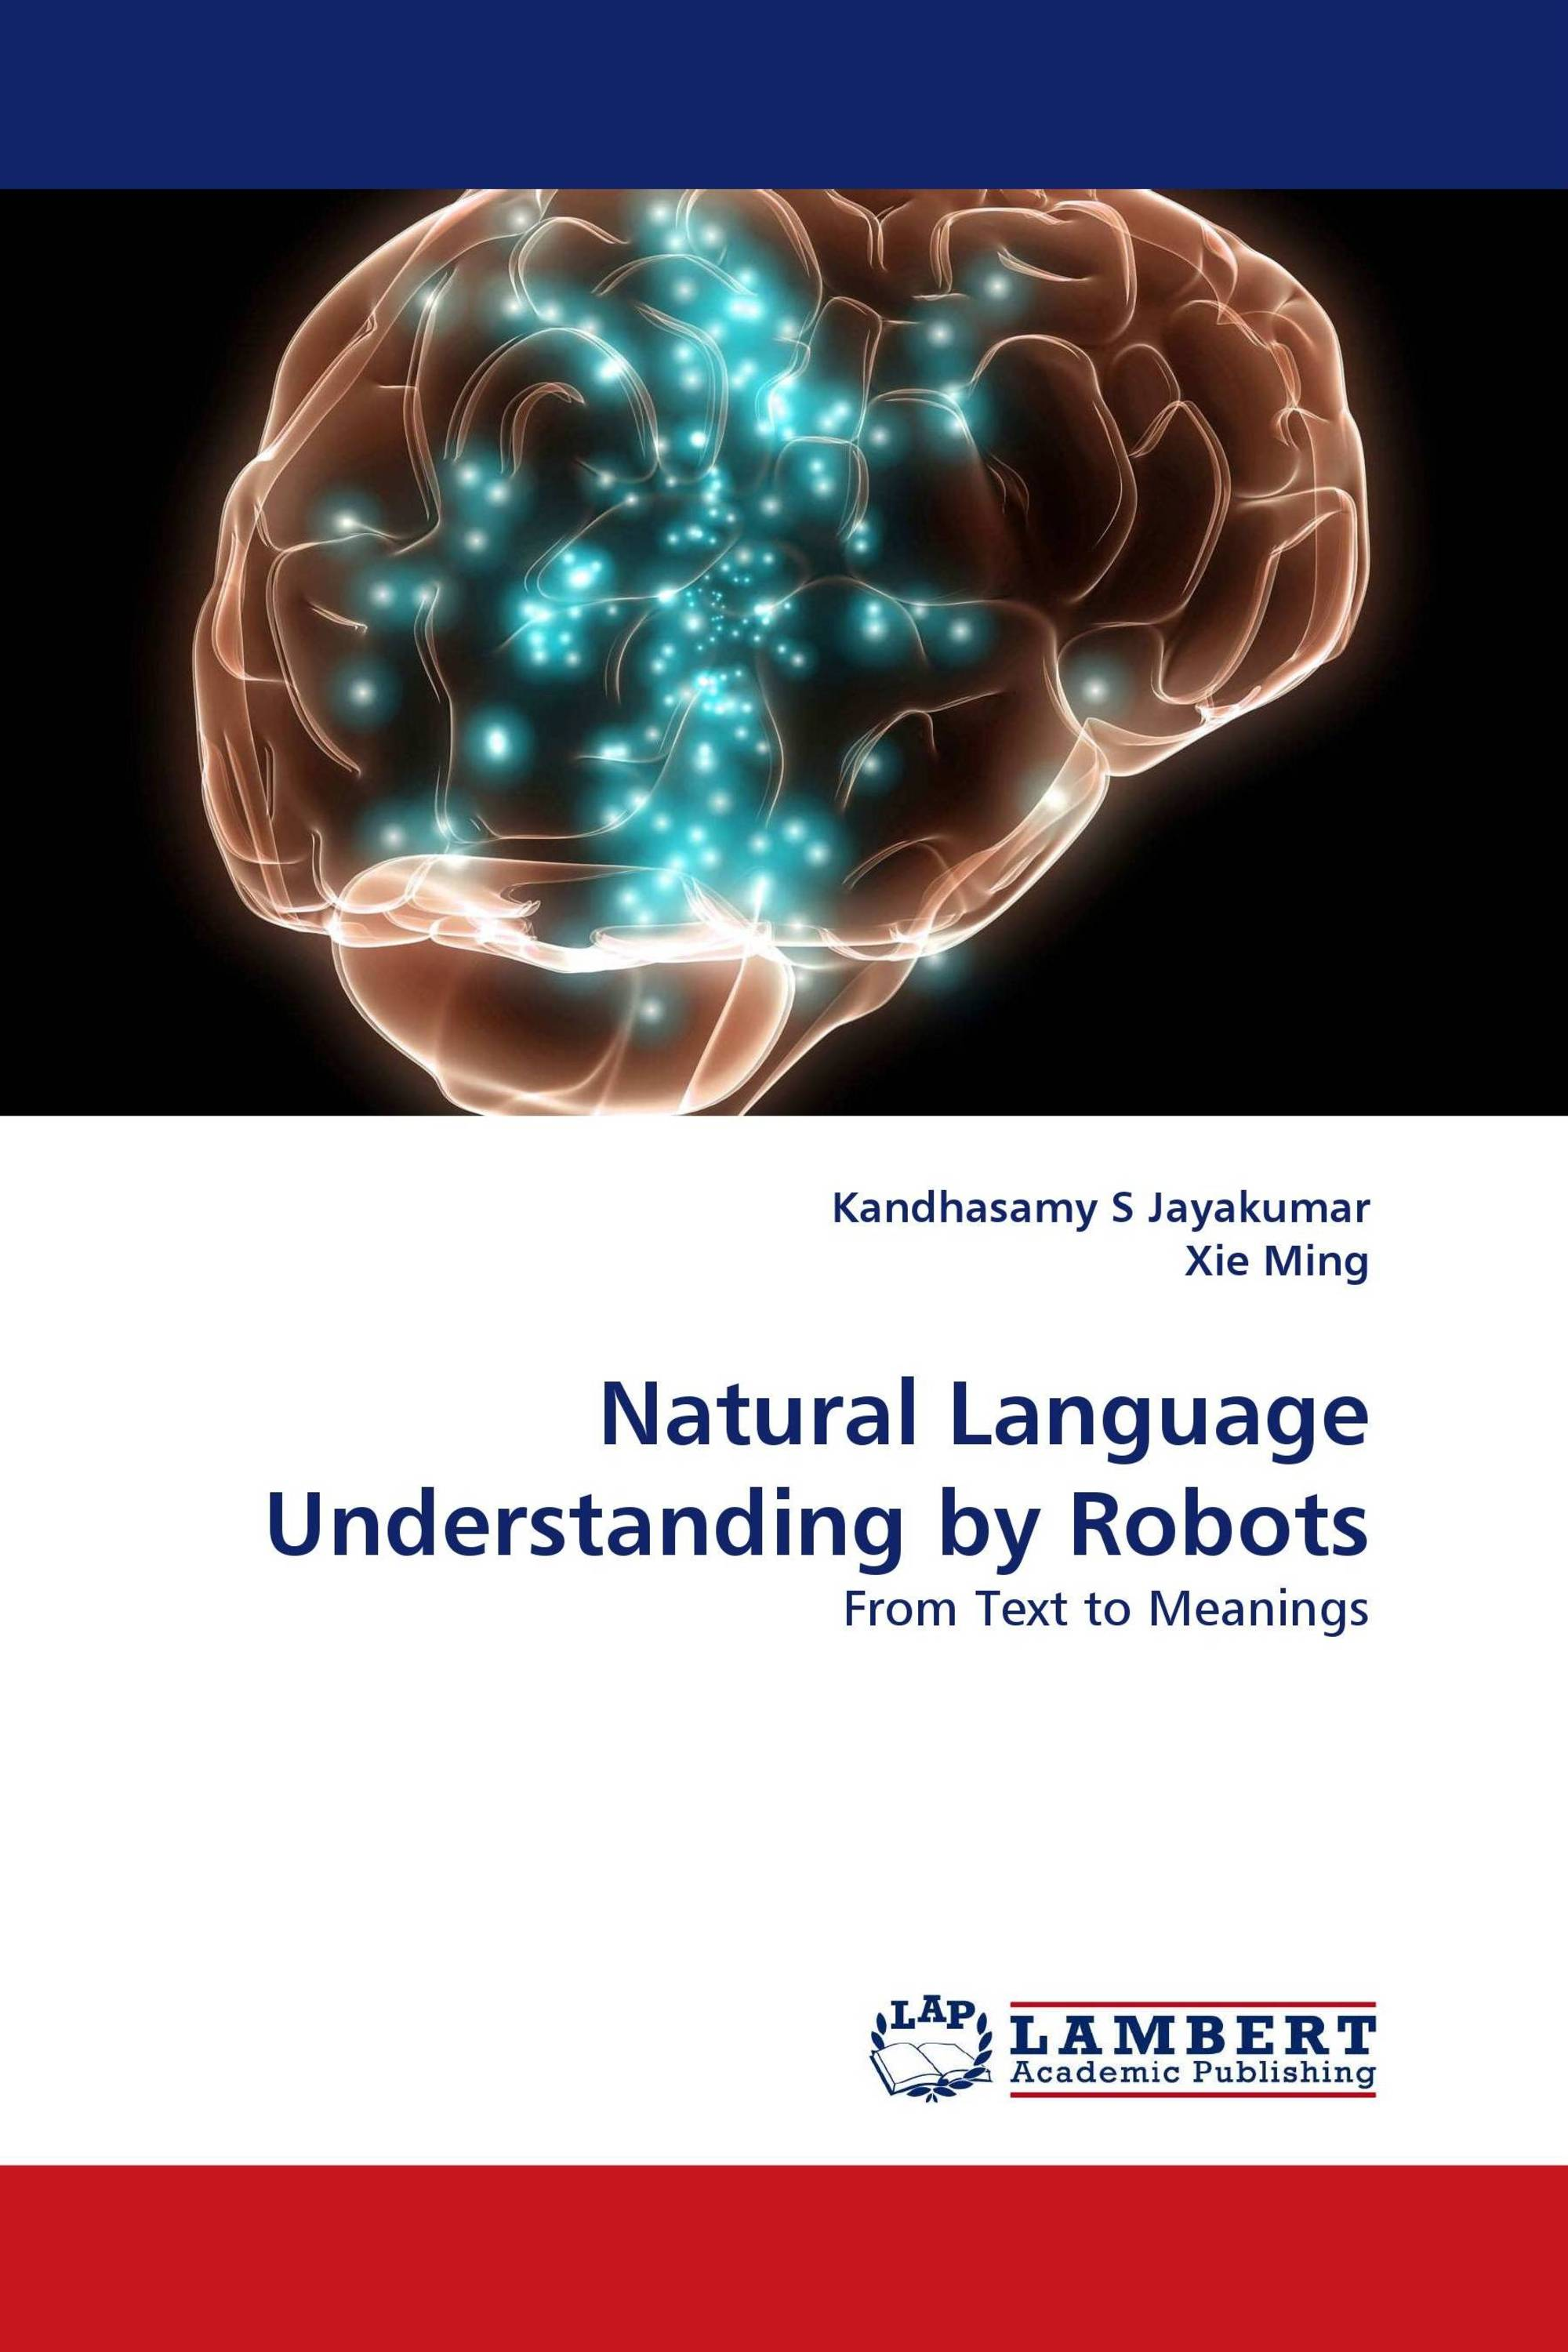 Natural Language Understanding by Robots